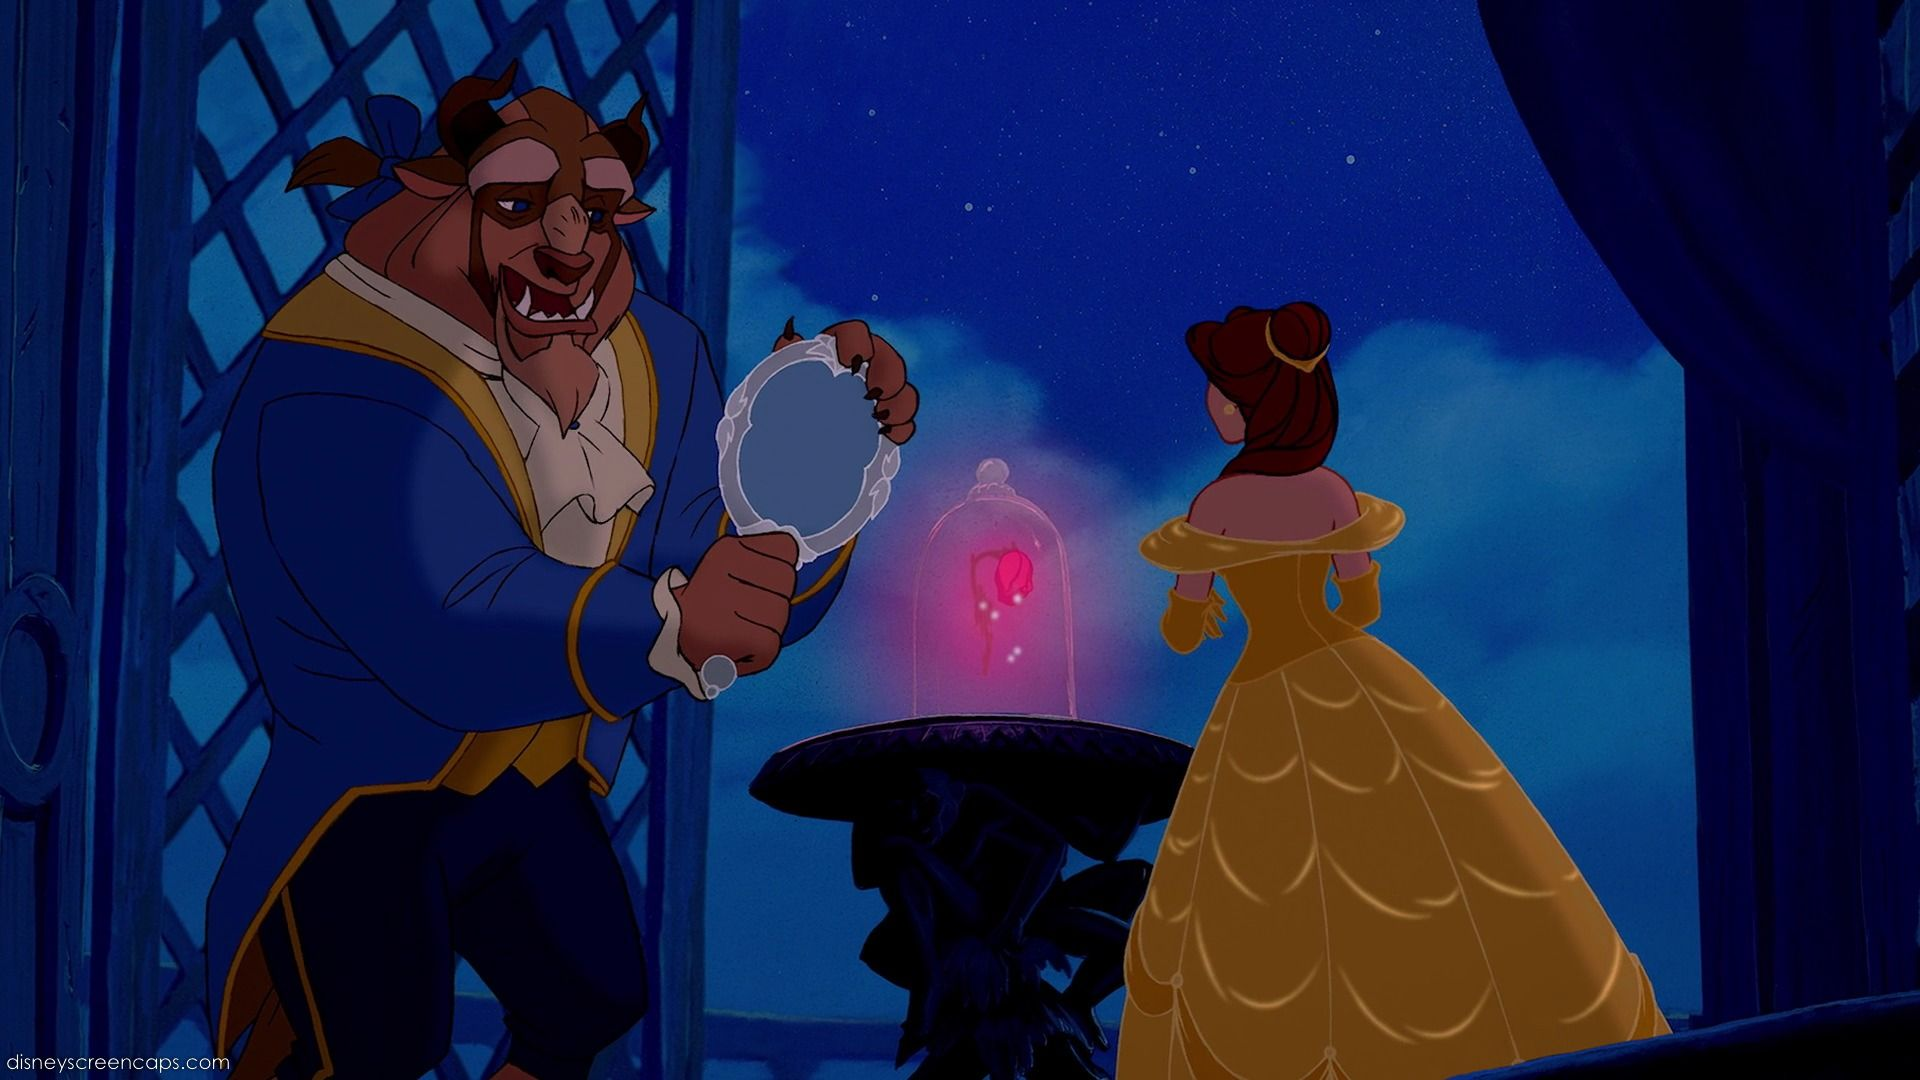 The Beast Shows Belle His Magic Mirror To Let Her See Her Father